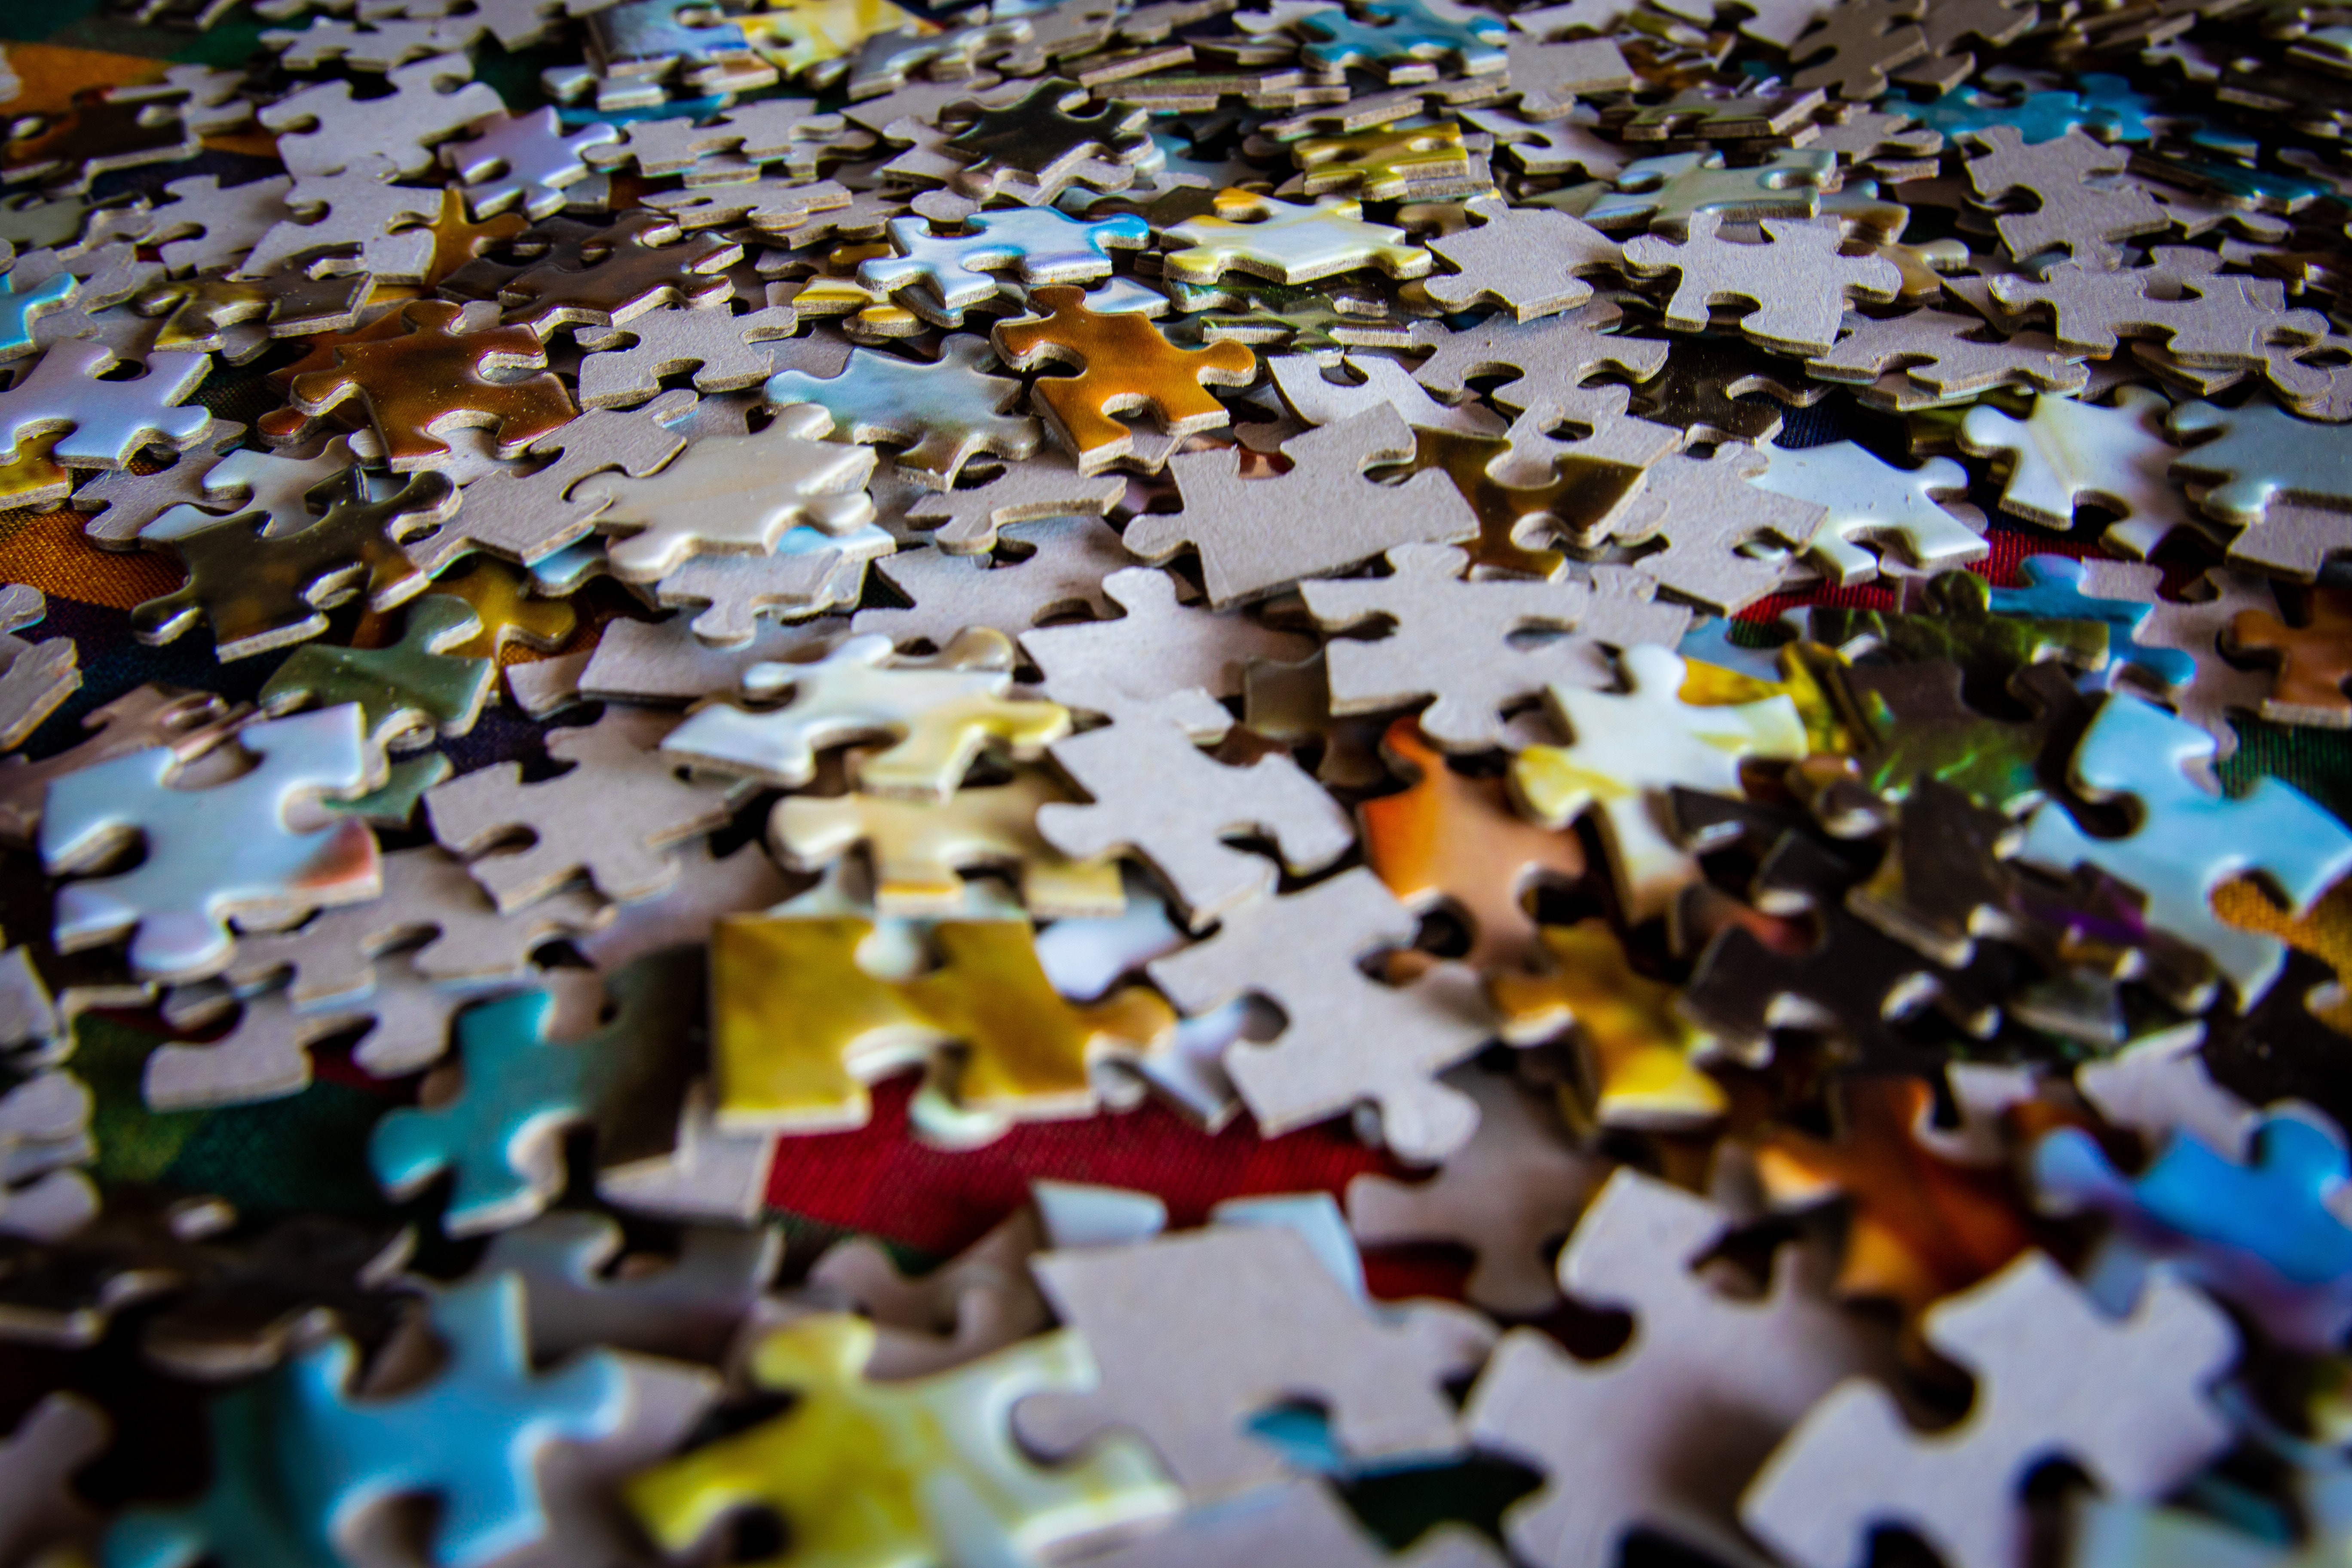 2 Hands Holding 1 Jigsaw Puzzle Piece Each 183 Free Stock Photo